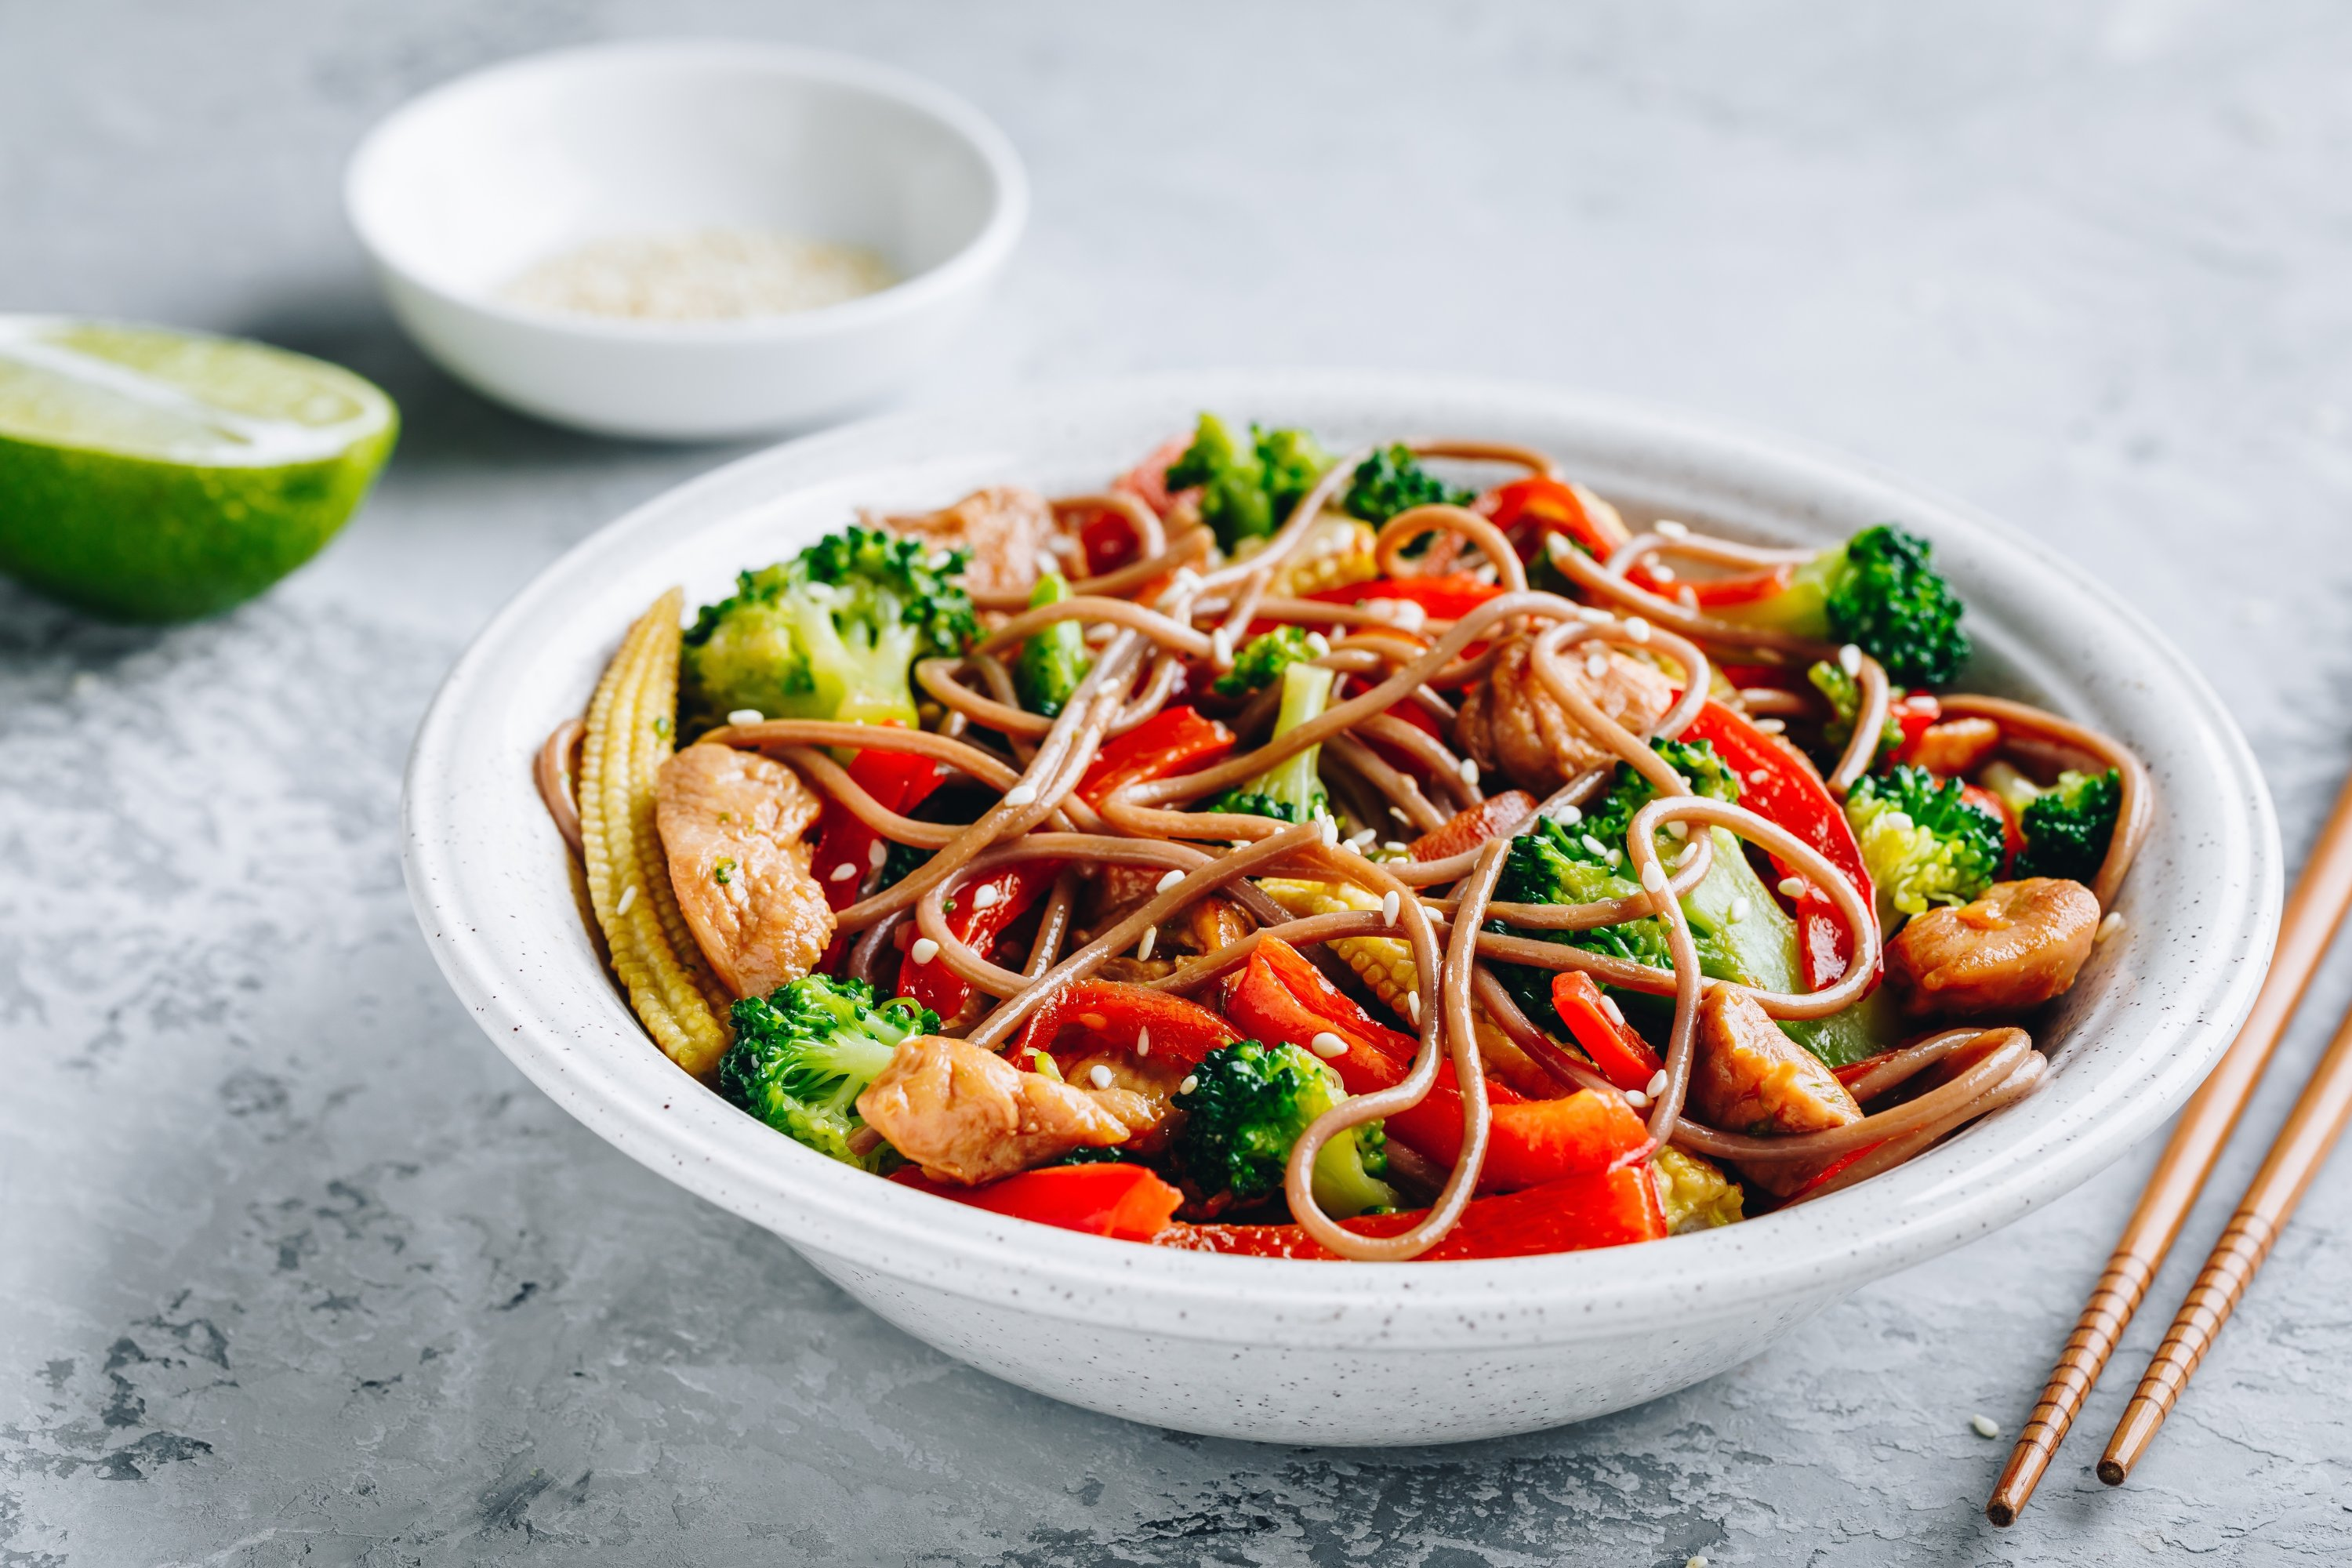 Try adding broccoli and red peppers to your noodles and stir-frys for extra oomph. (Shutterstock Photo)